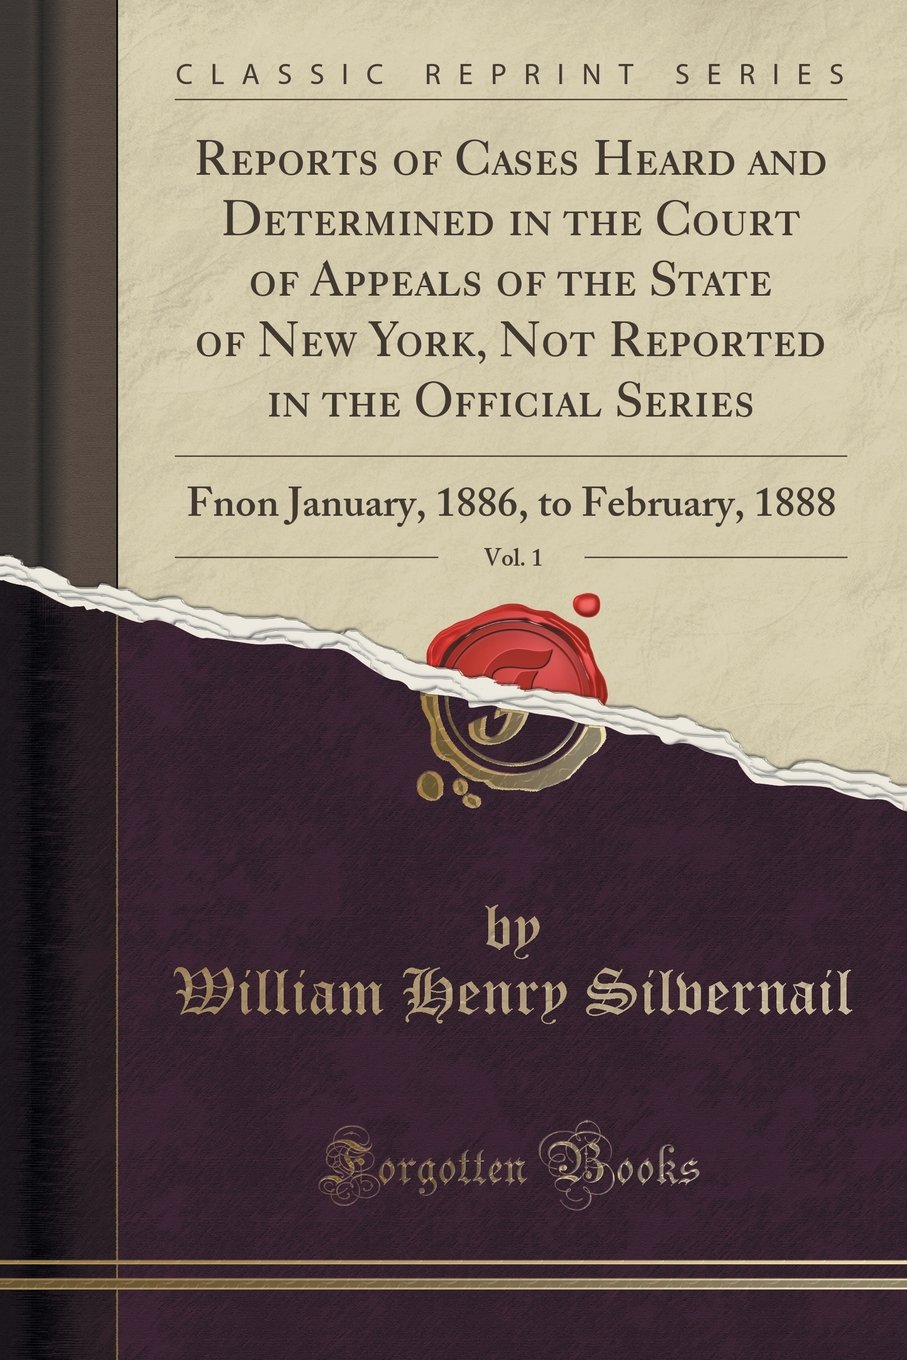 Reports of Cases Heard and Determined in the Court of Appeals of the State of New York, Not Reported in the Official Series, Vol. 1: Fnon January, 1886, to February, 1888 (Classic Reprint) ebook